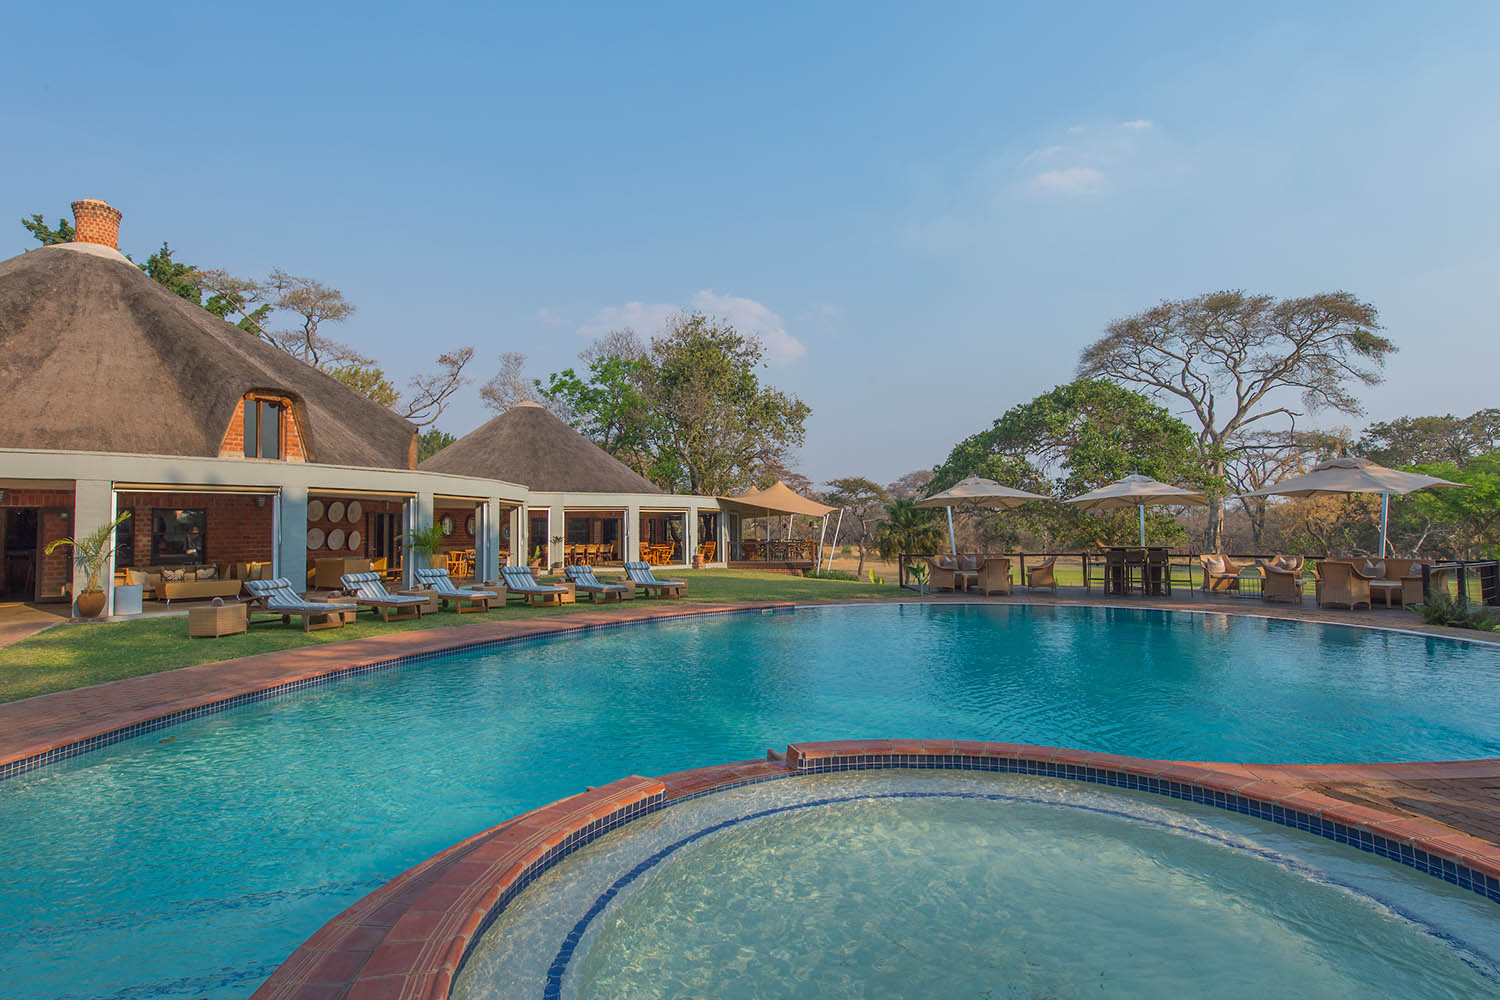 lilayi lodge zambia-in-style-tours-safari-packages-lodges-lusaka-accommodation-activities-swimming-pool